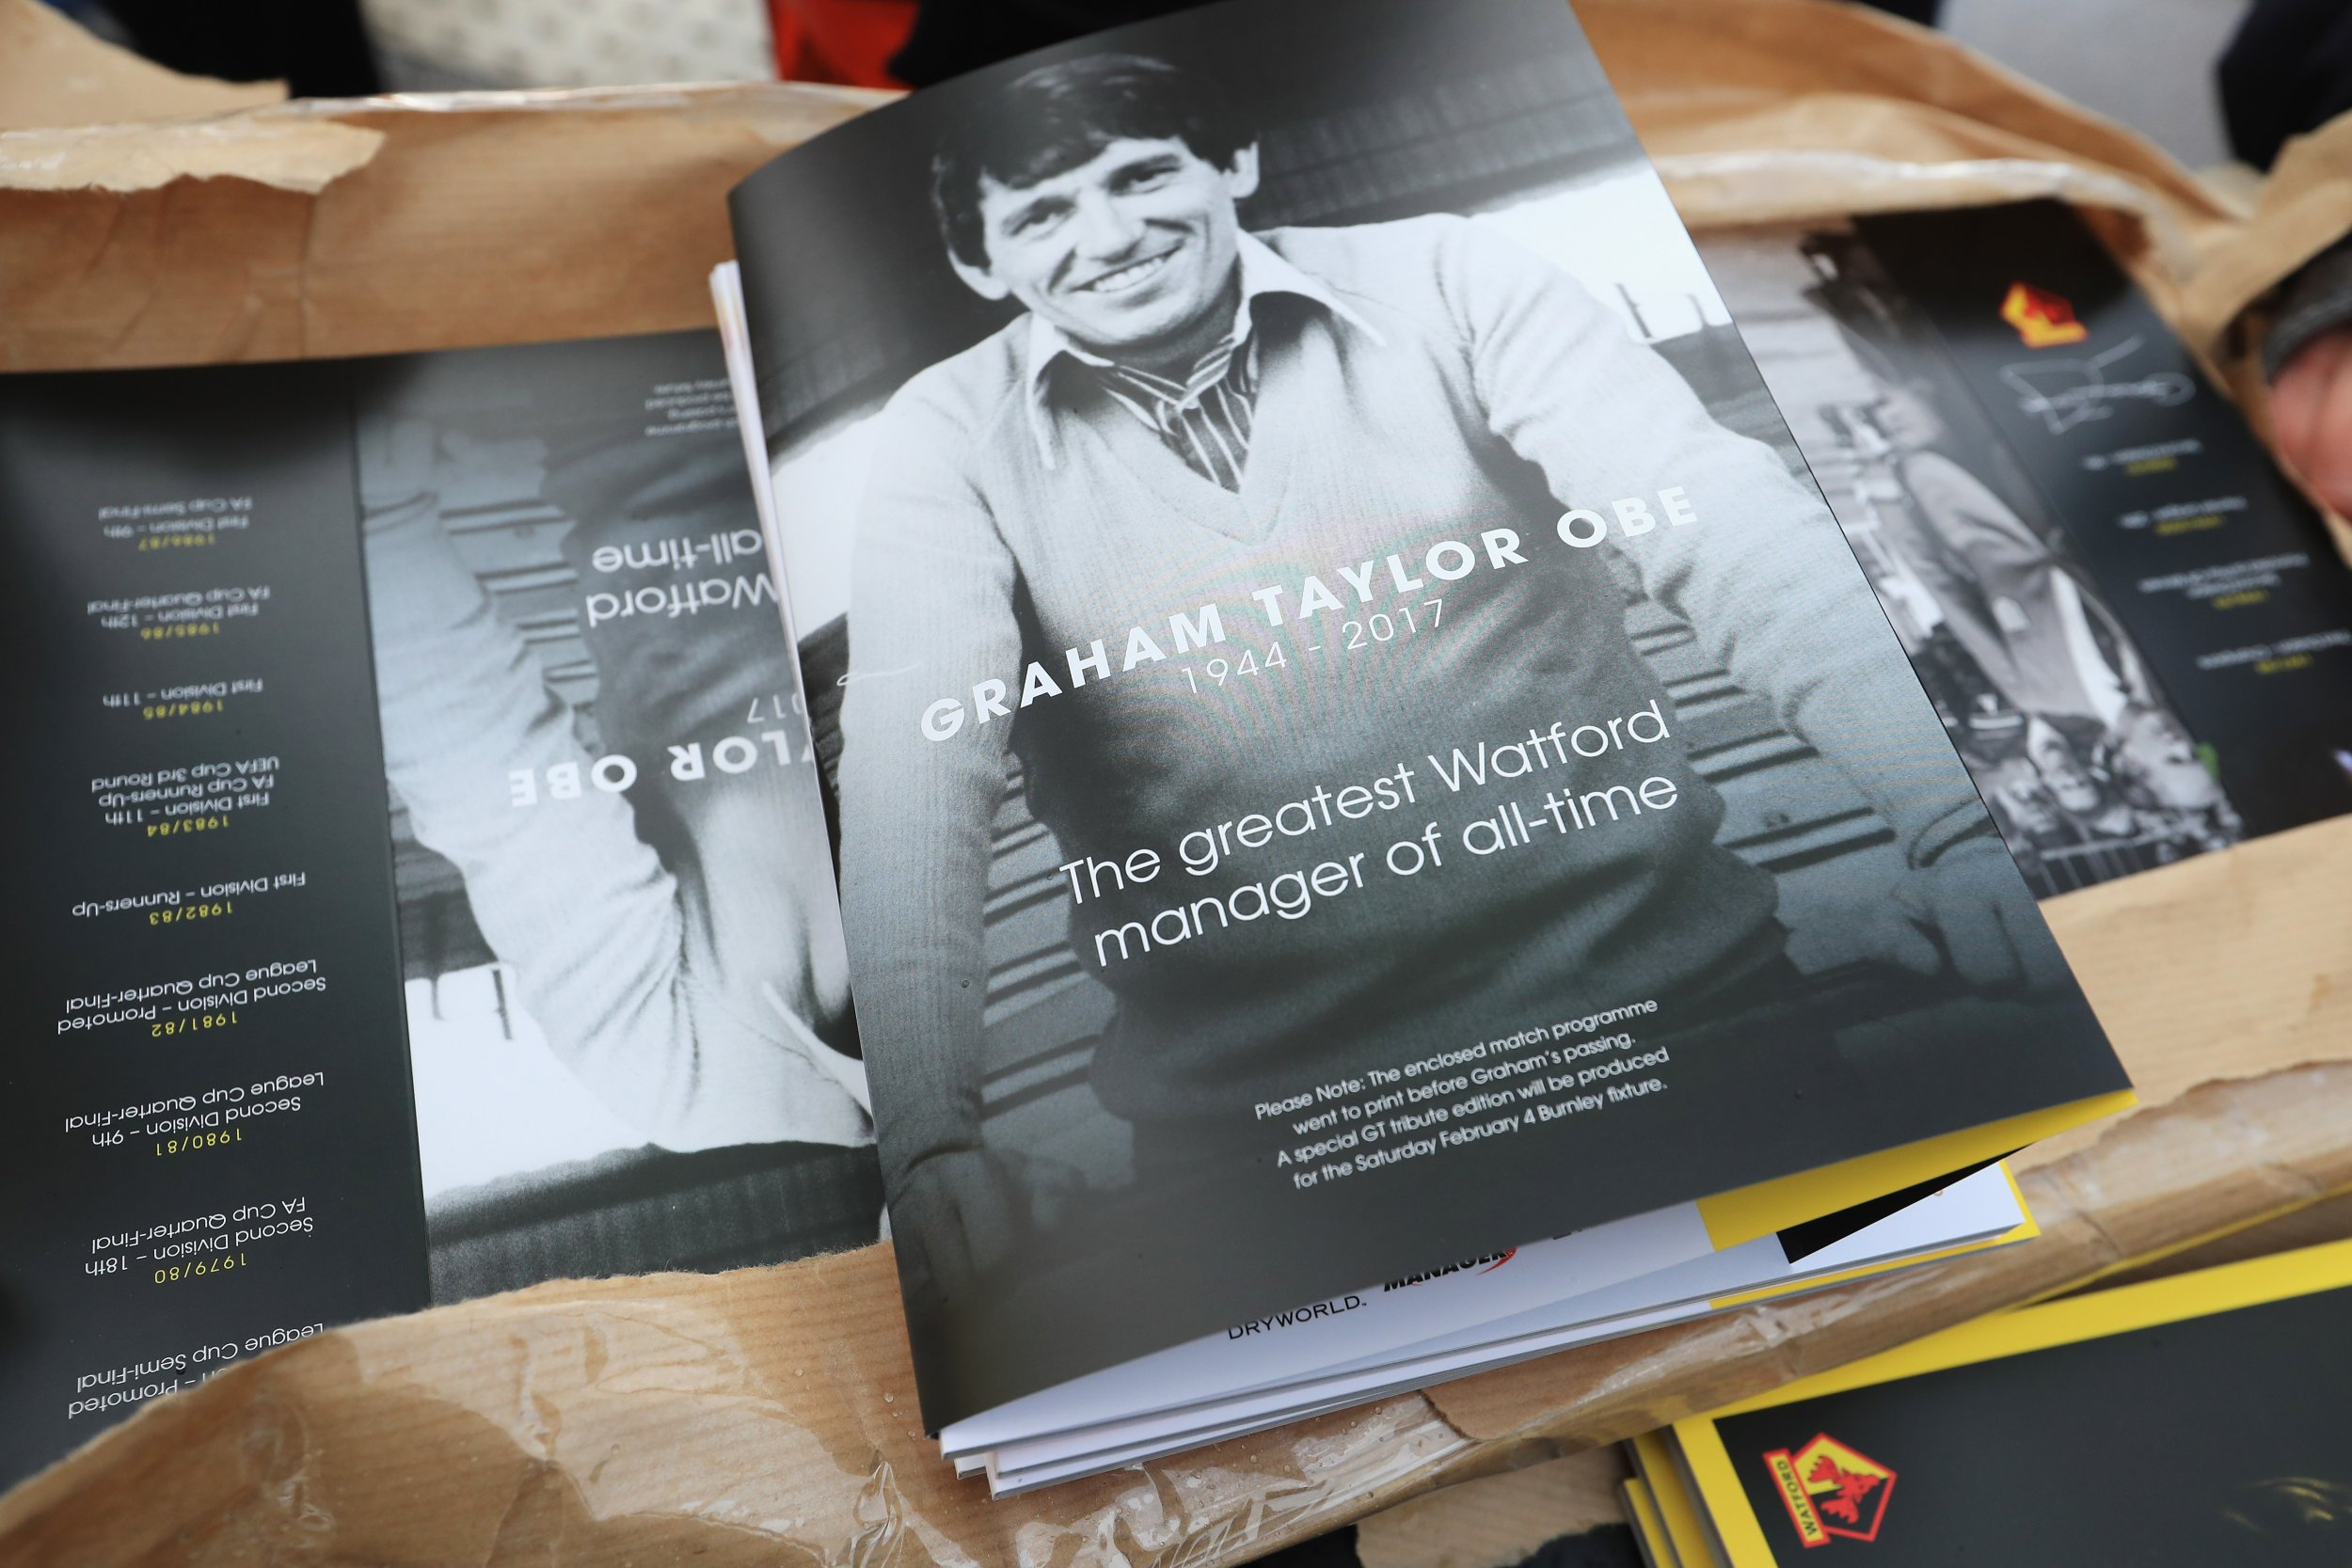 A programme at Vicarage Road dedicated to Graham Taylor.